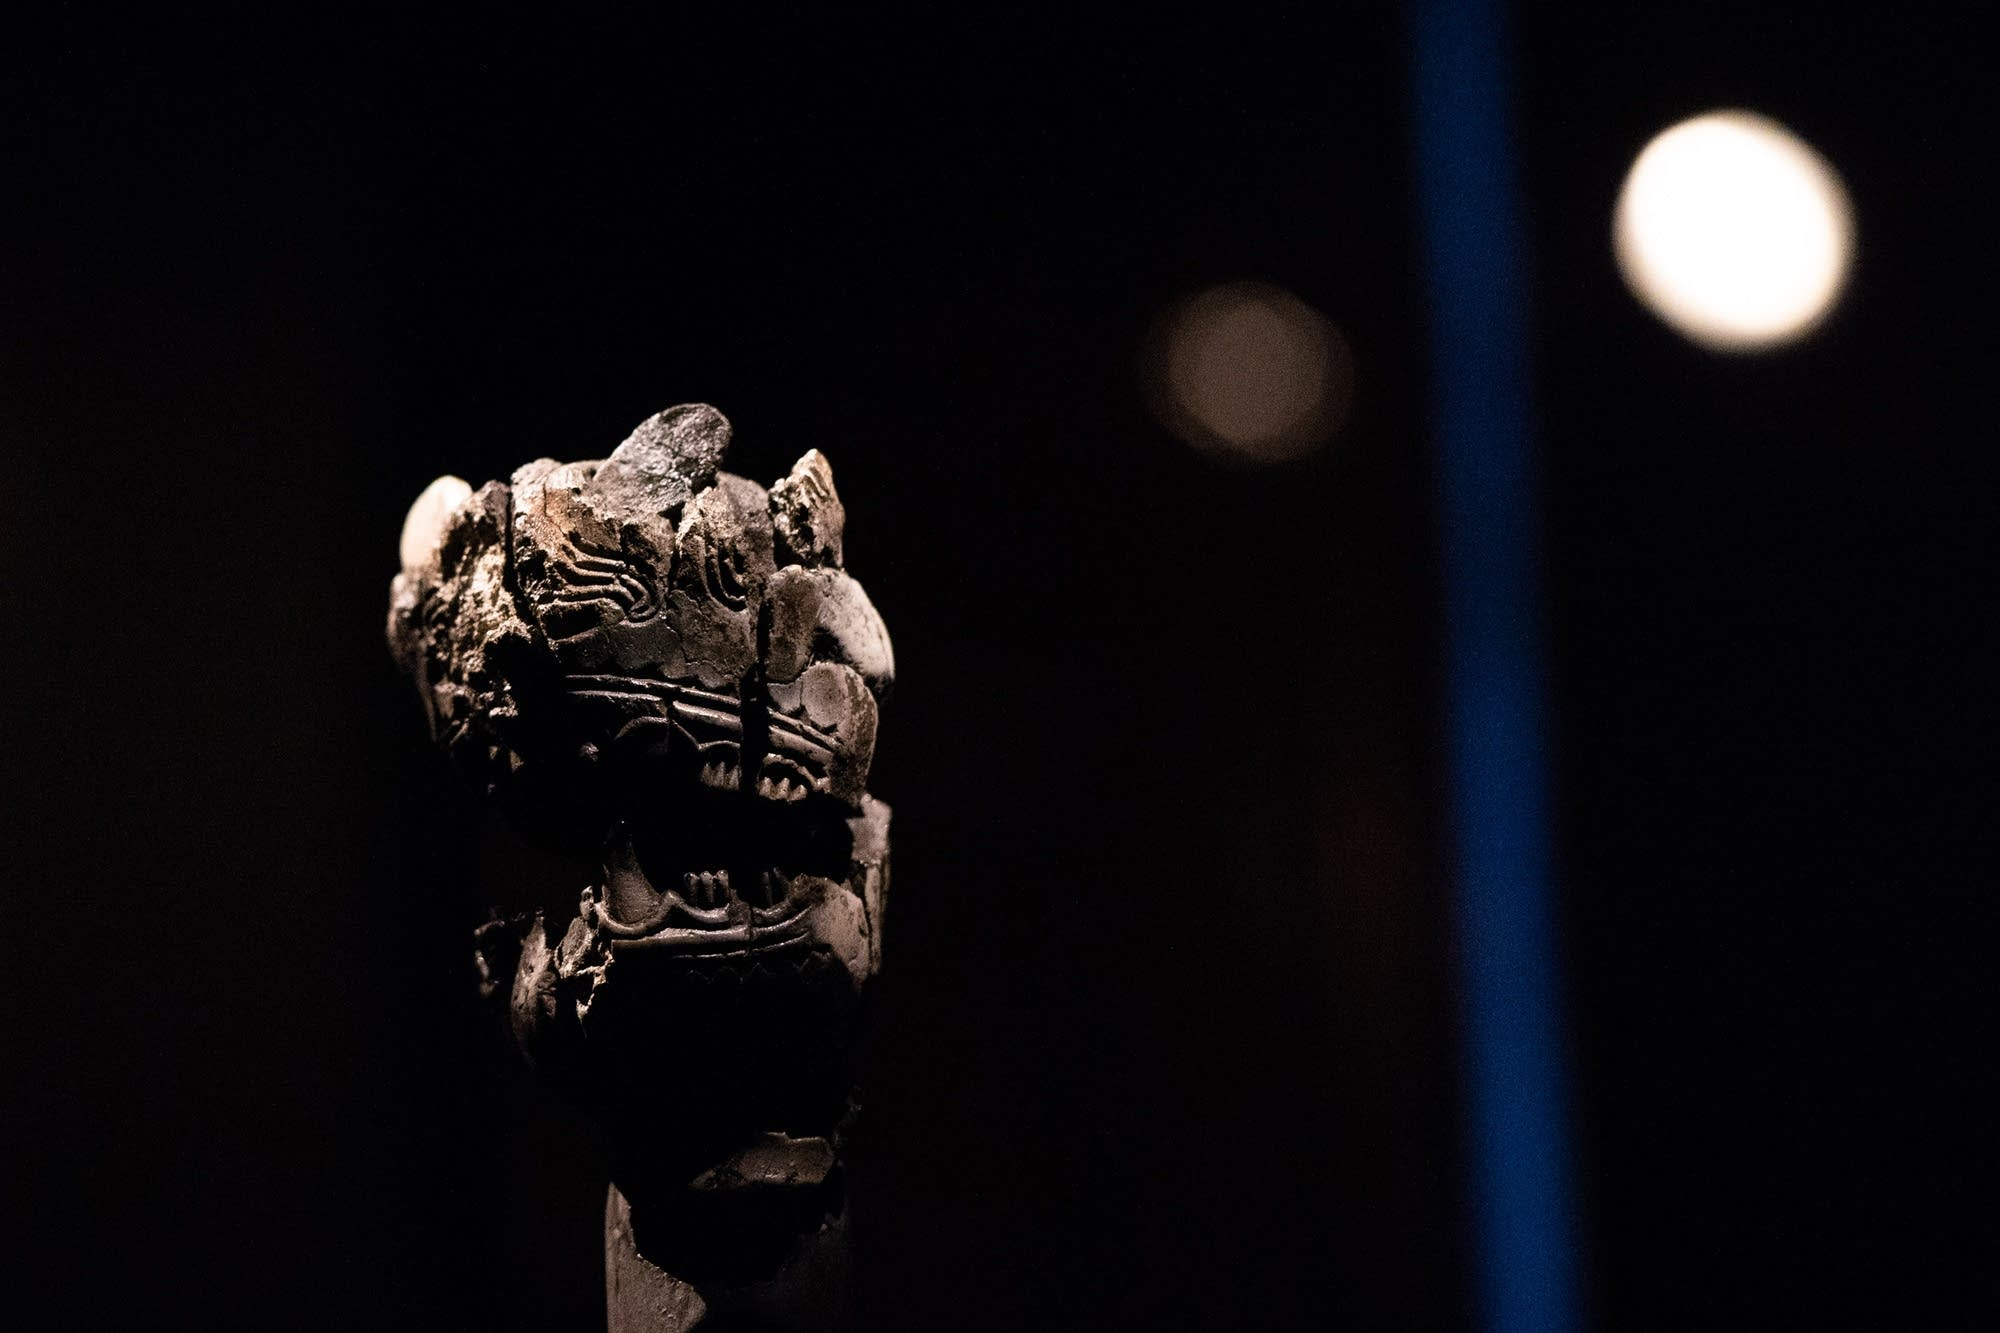 A decorated animal head recovered from the grave of a 10th-century Viking.